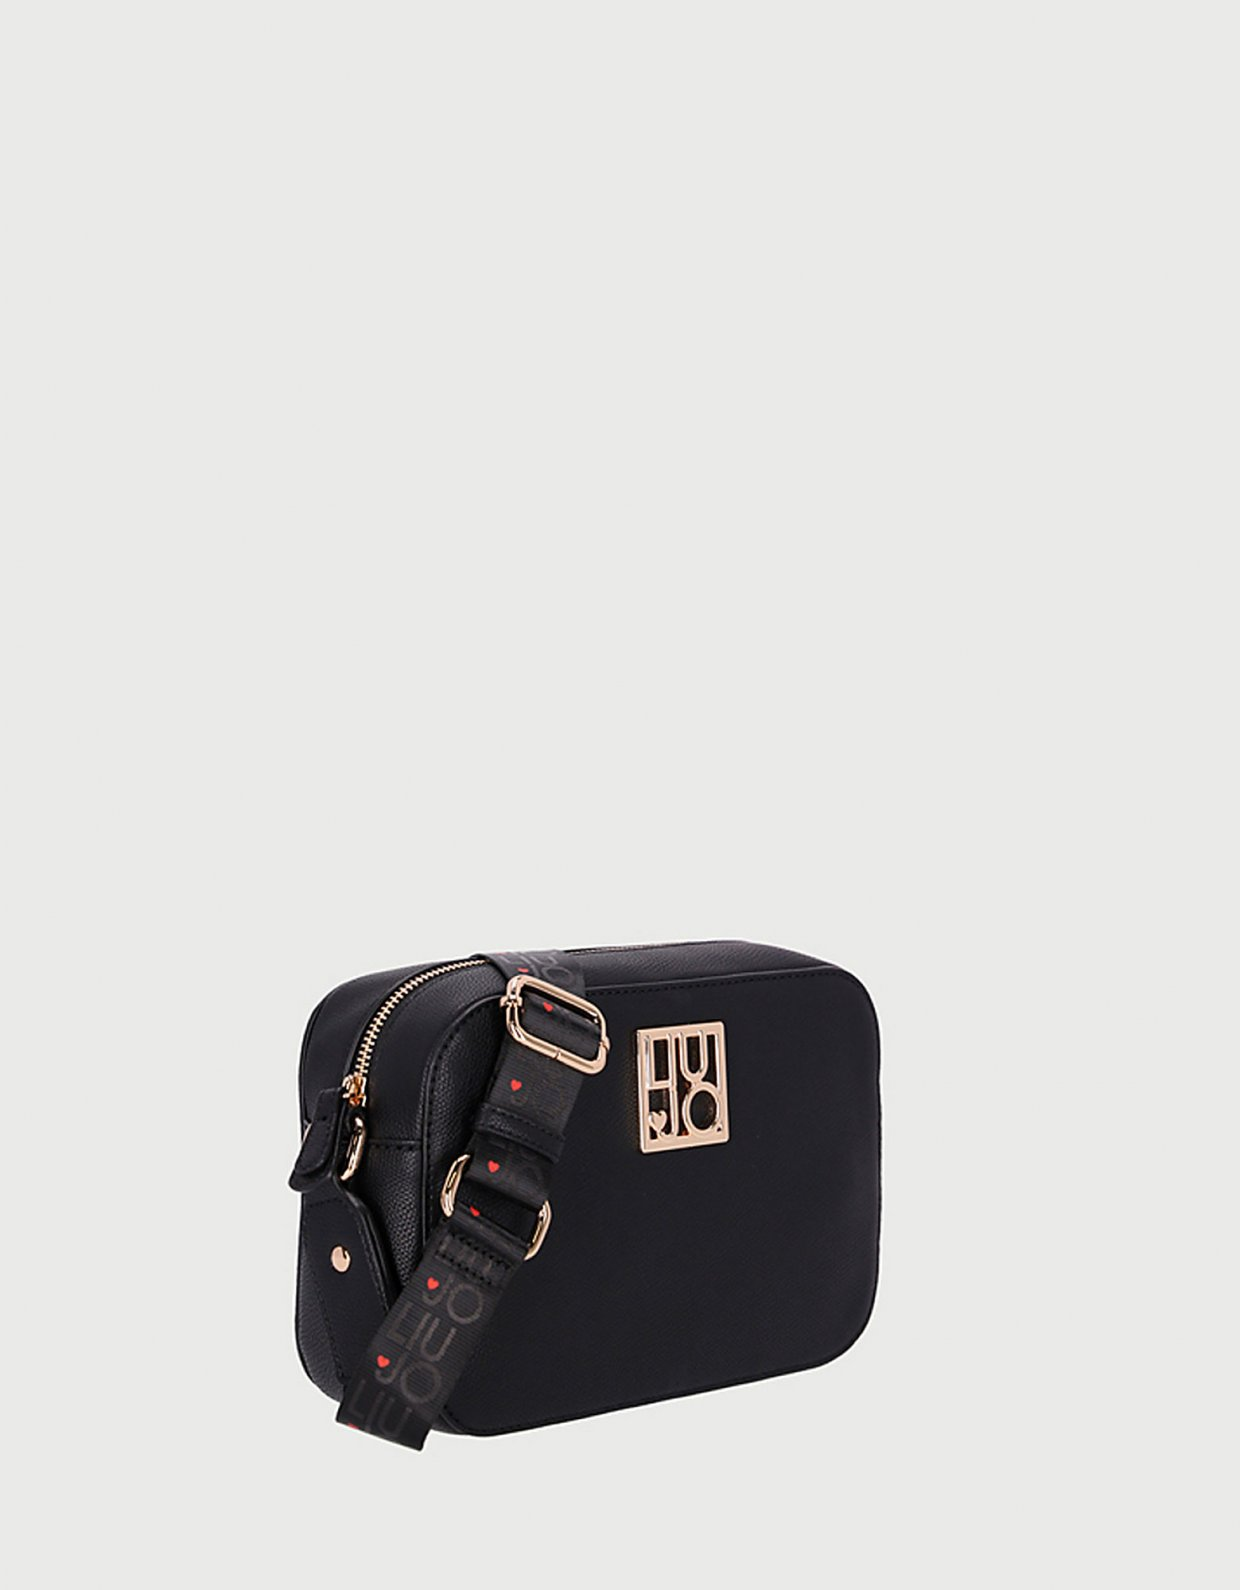 Liu Jo Eco-friendly crossbody black